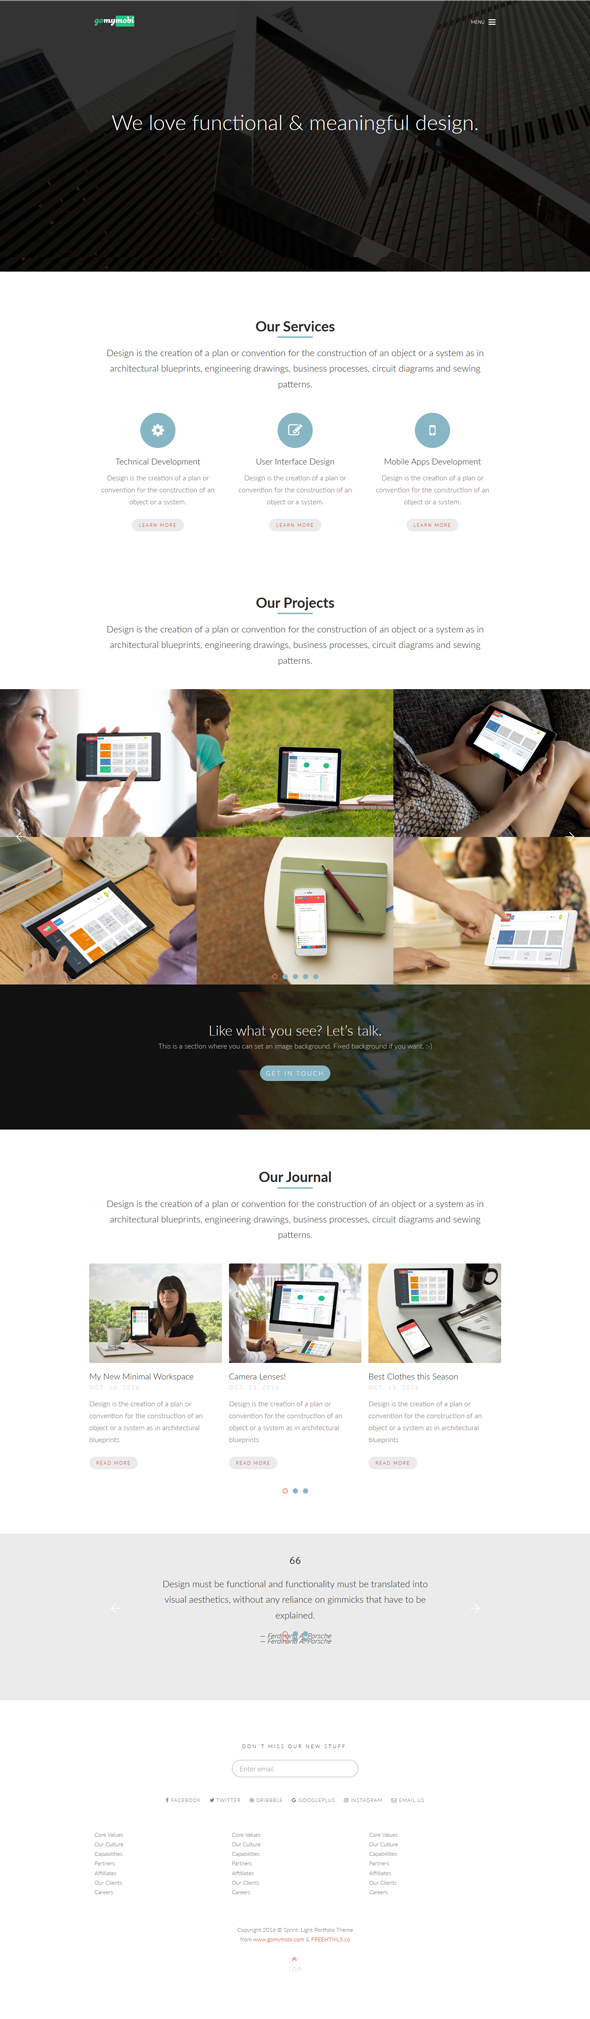 gomymobiBSB's Site Theme: Sprint - Light Portfolio - 2